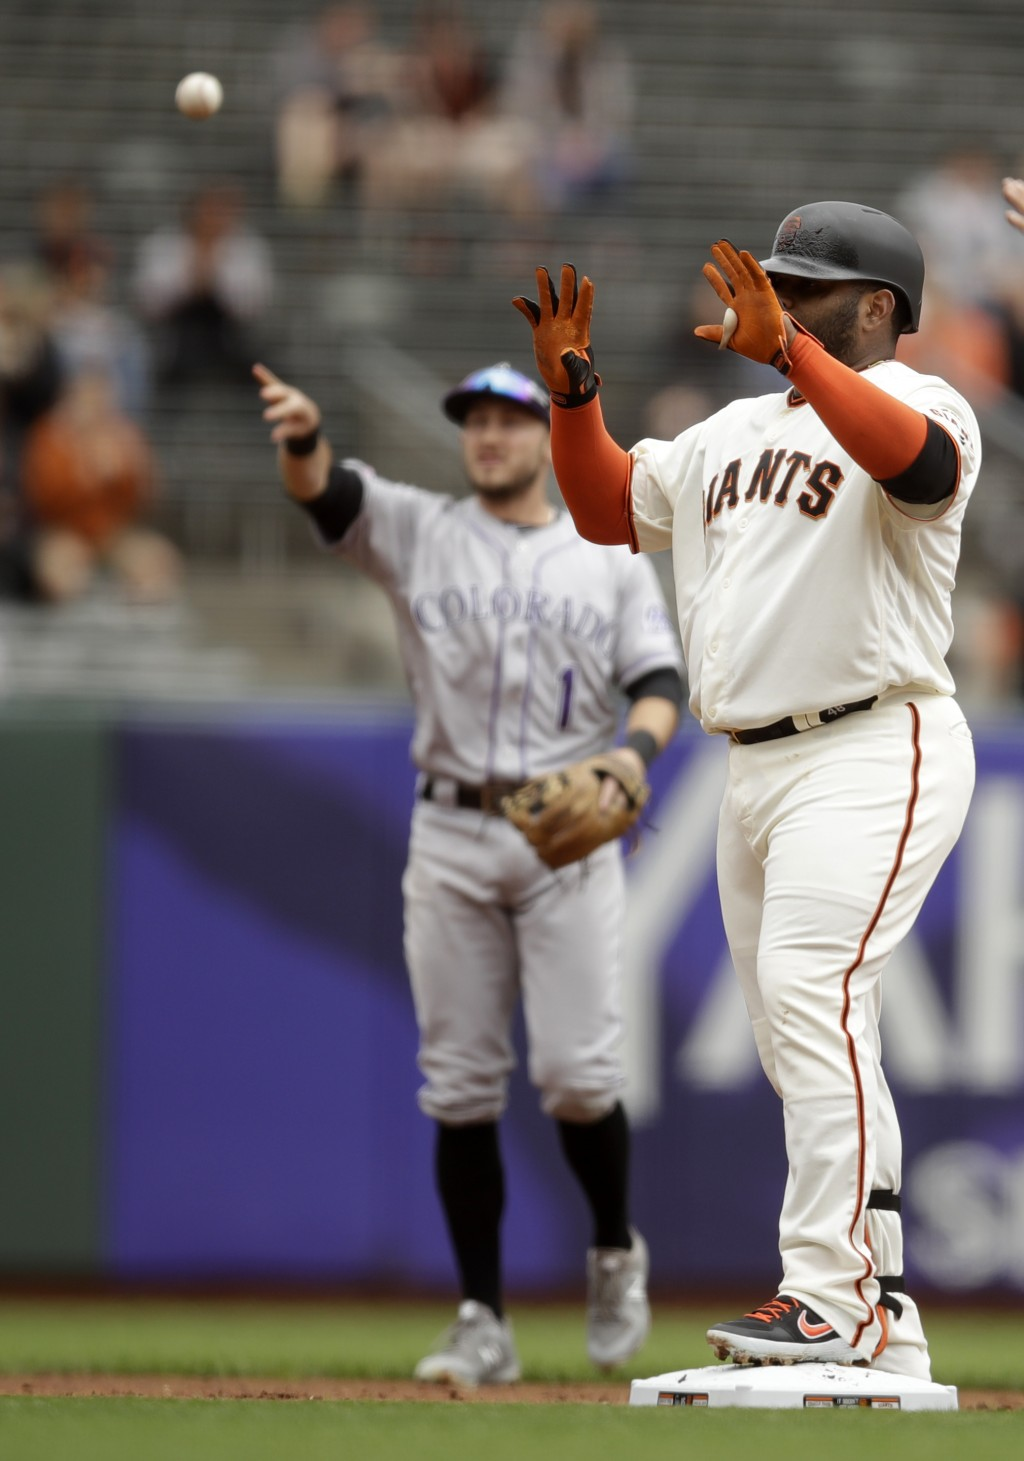 San Francisco Giants' Pablo Sandoval, right, celebrates after hitting an RBI double against the Colorado Rockies in the first inning of a baseball gam...